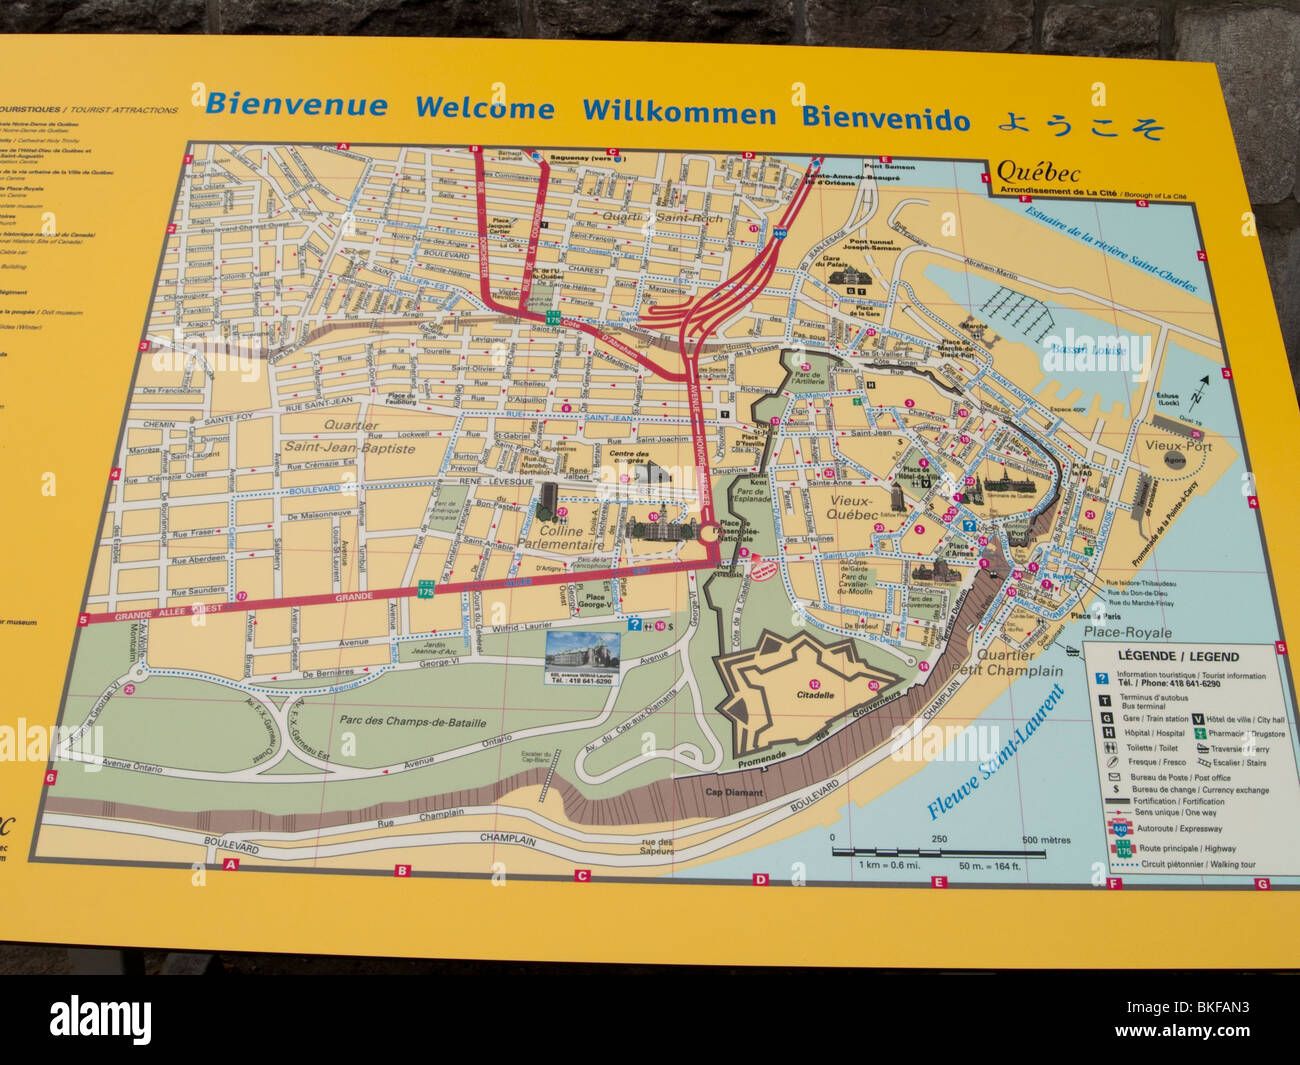 A Street Map Of Quebec City Canada Stock Photo Royalty Free Image - Map of quebec canada